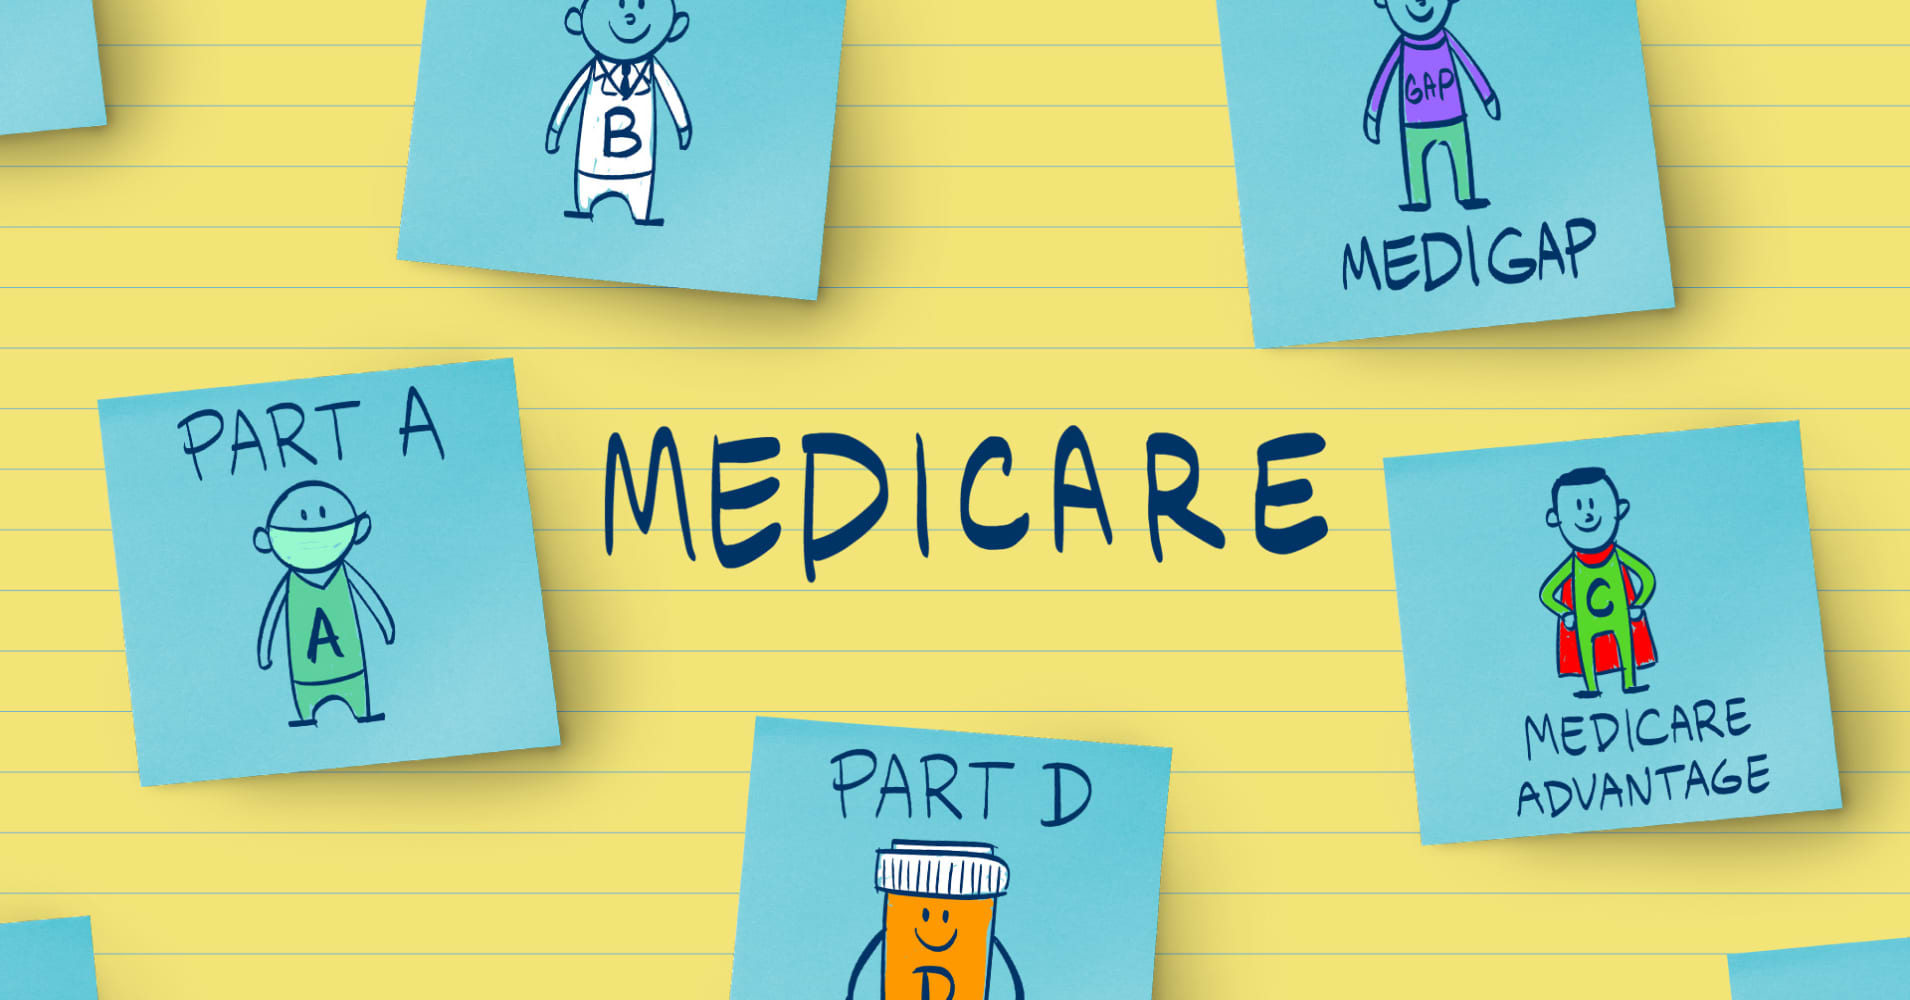 Medicare doesn't cover everything. Here's how to avoid surprises